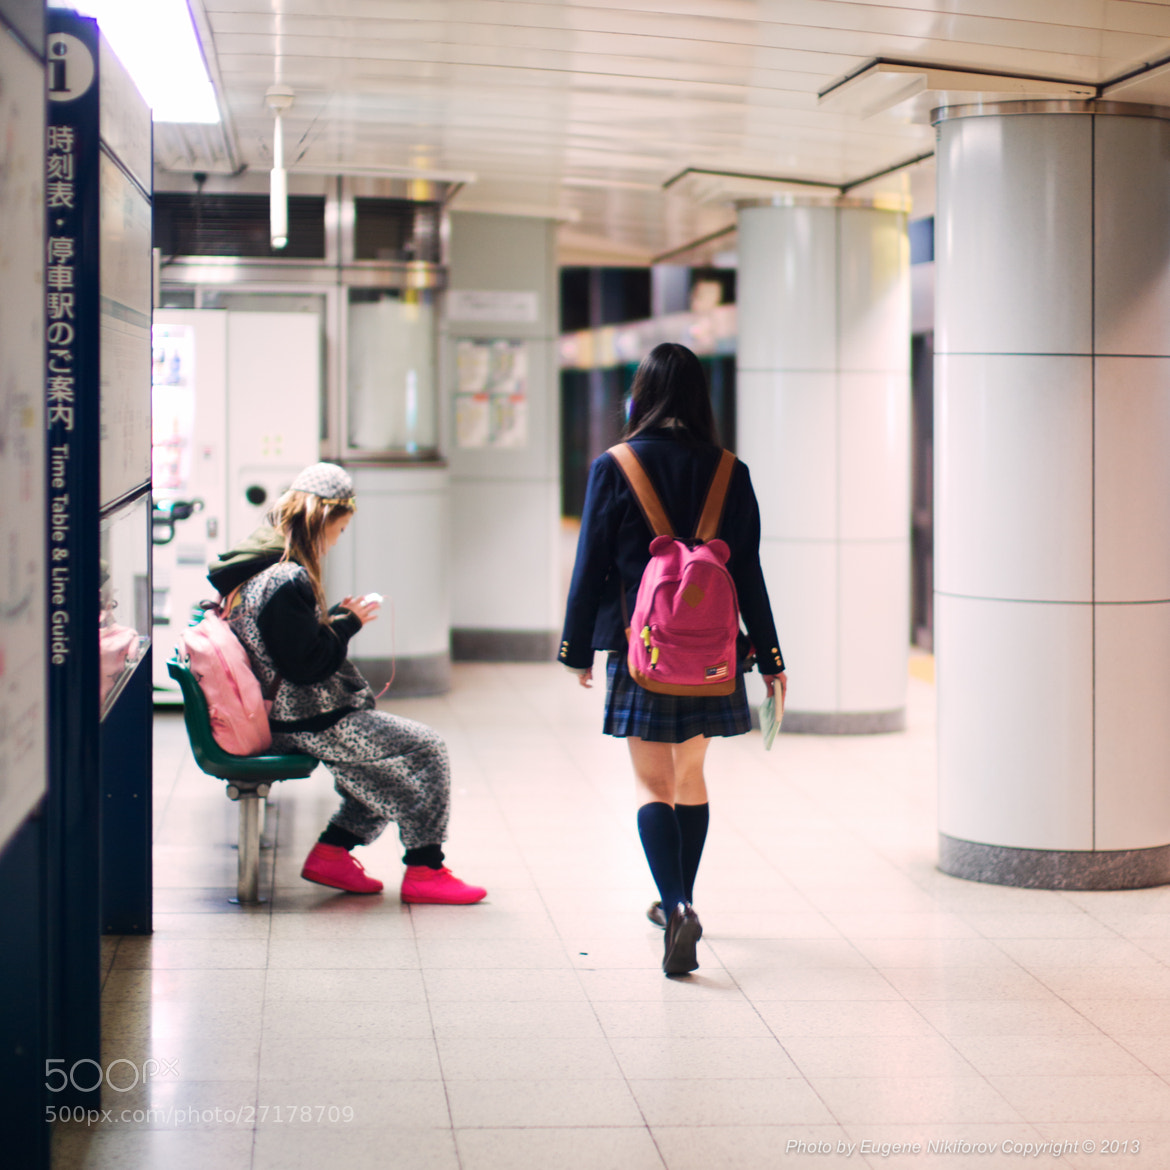 Photograph Shoes, Tokyo Subway by Eugene Nikiforov on 500px